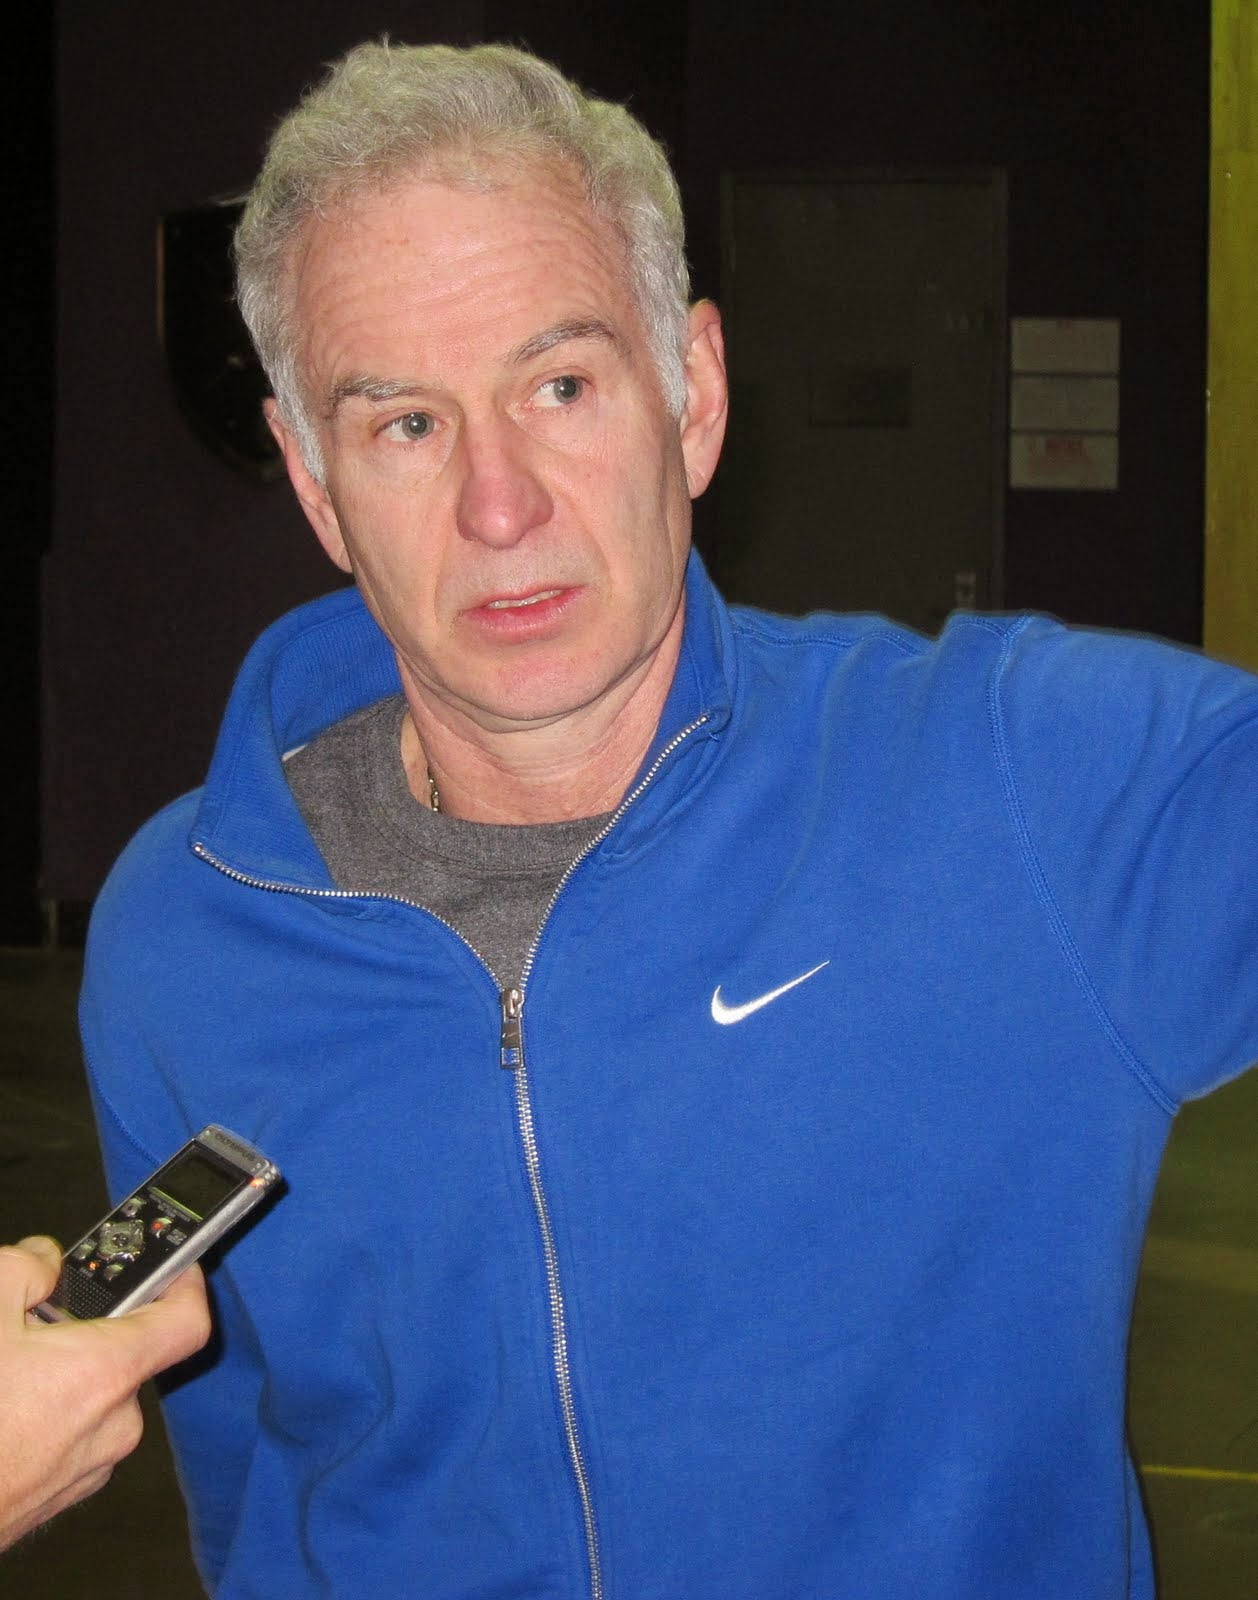 John McEnroe Q&A: U.S. tennis needs athletes